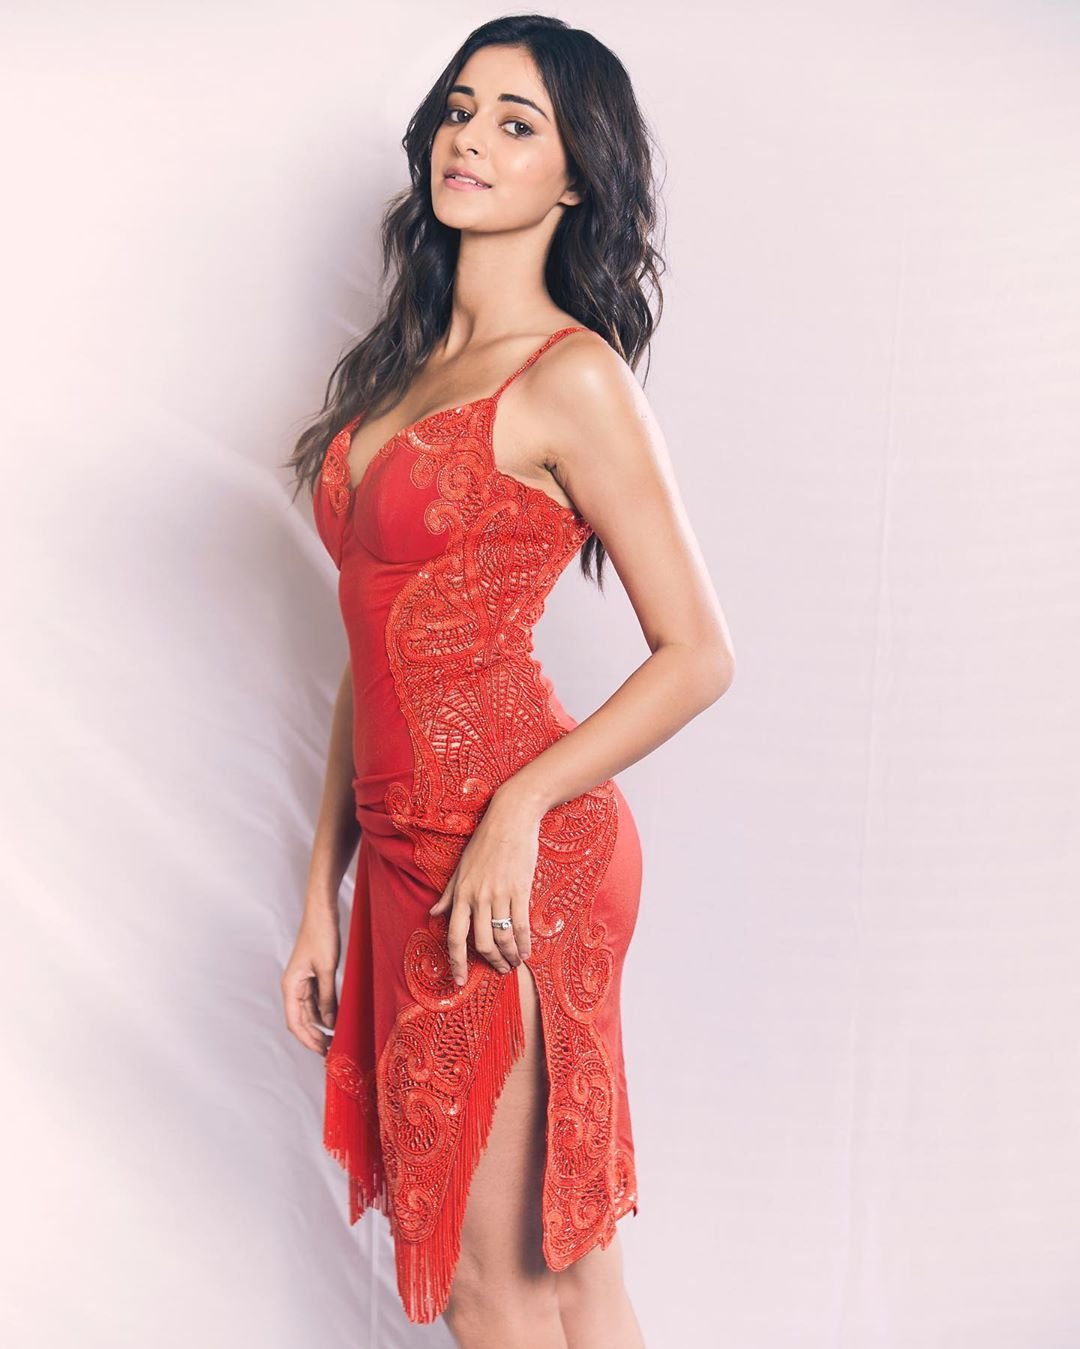 Ananya Panday in Kresha Bajaj's Red Midi Dress